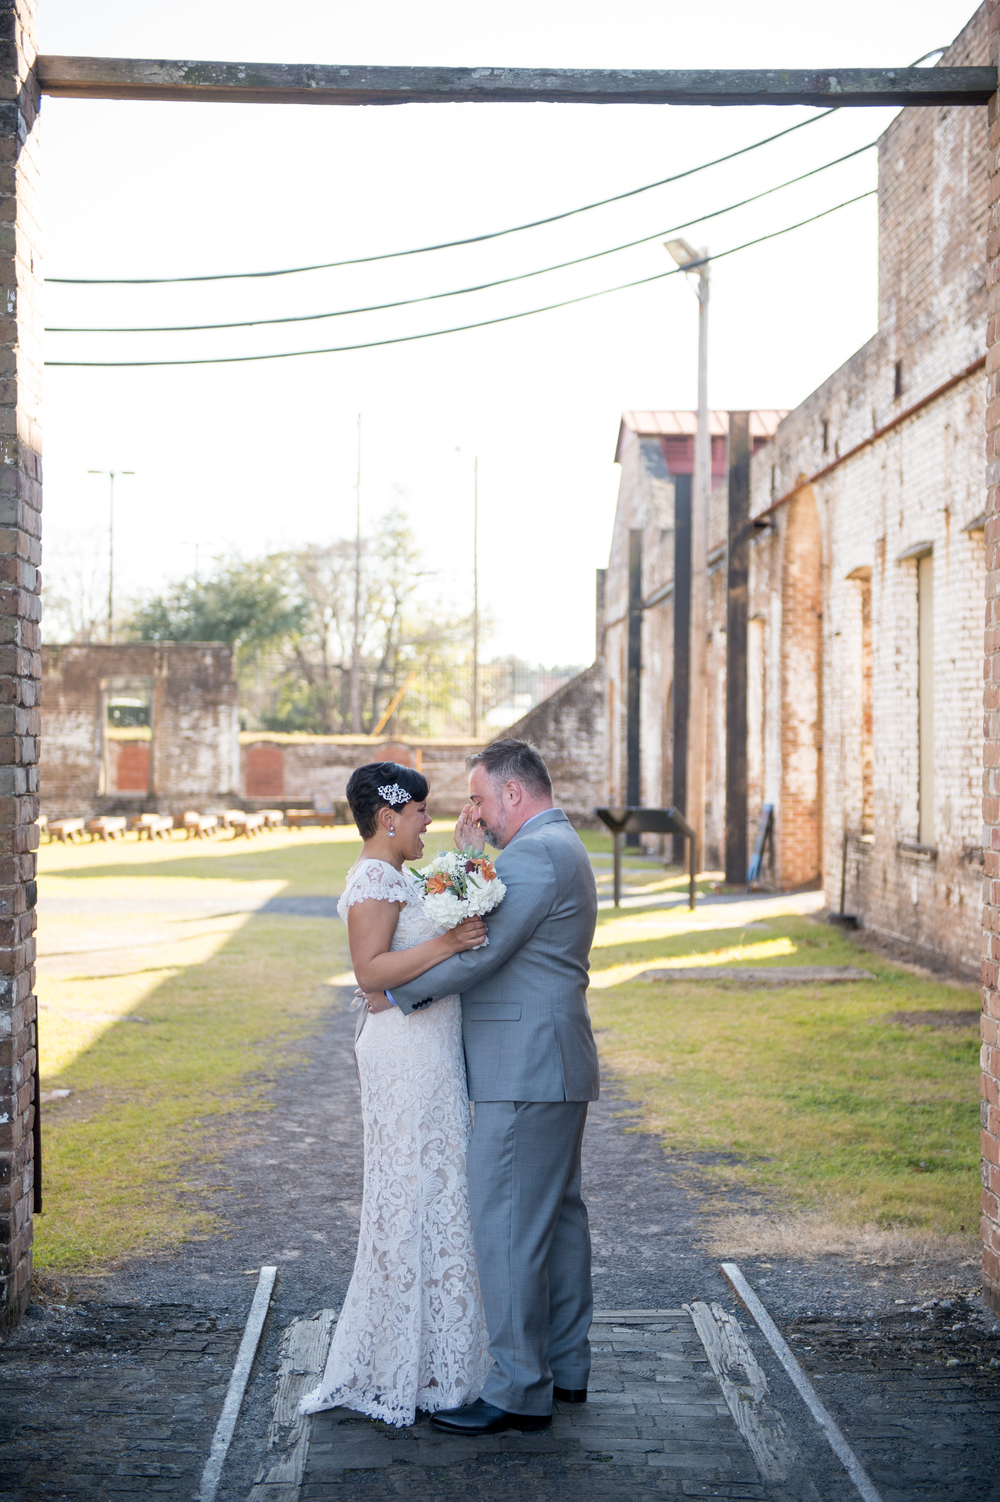 capree-kyle-la-vega-fotografie-roundhouse-railroad-museum-wedding-savannah-wedding-planner-rustic-savannah-wedding-museum-wedding-ivory-and-beau-savannah-bridal-boutique-savannah-weddings-savannah-event-designer-savannah-florist-2.jpg